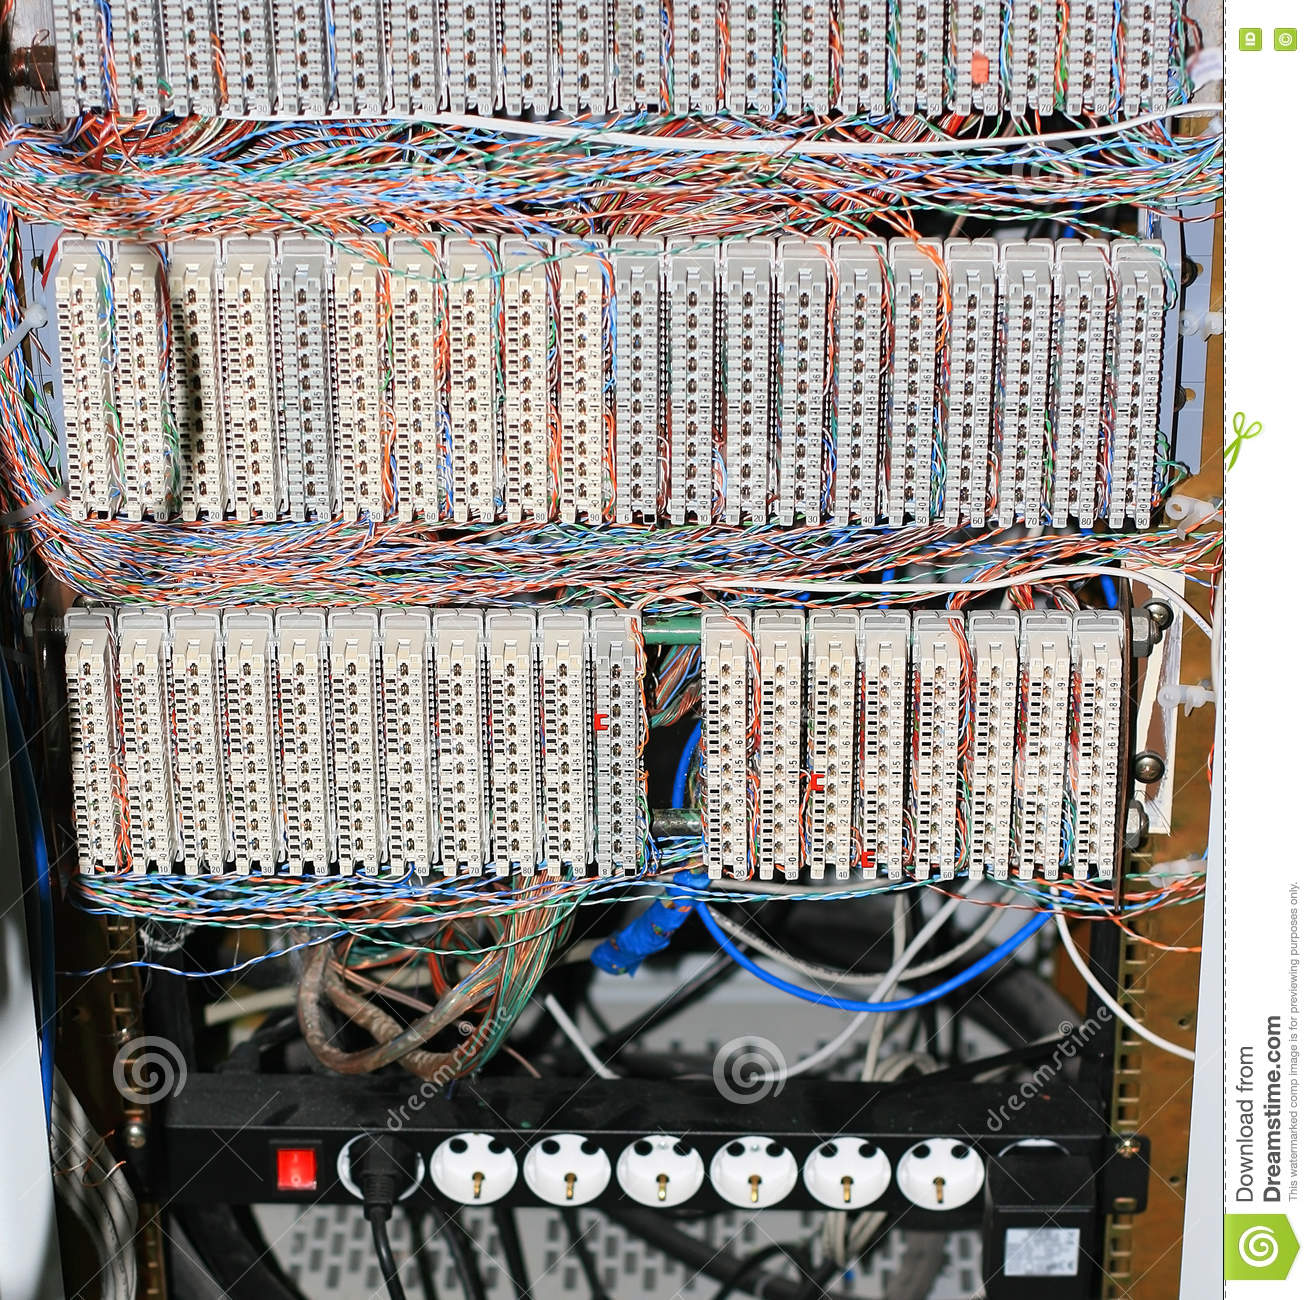 Telephone Wiring Closet Not Lossing Diagram Home Stock Image Of Jack Data Connection 71463219 Rh Dreamstime Com Block